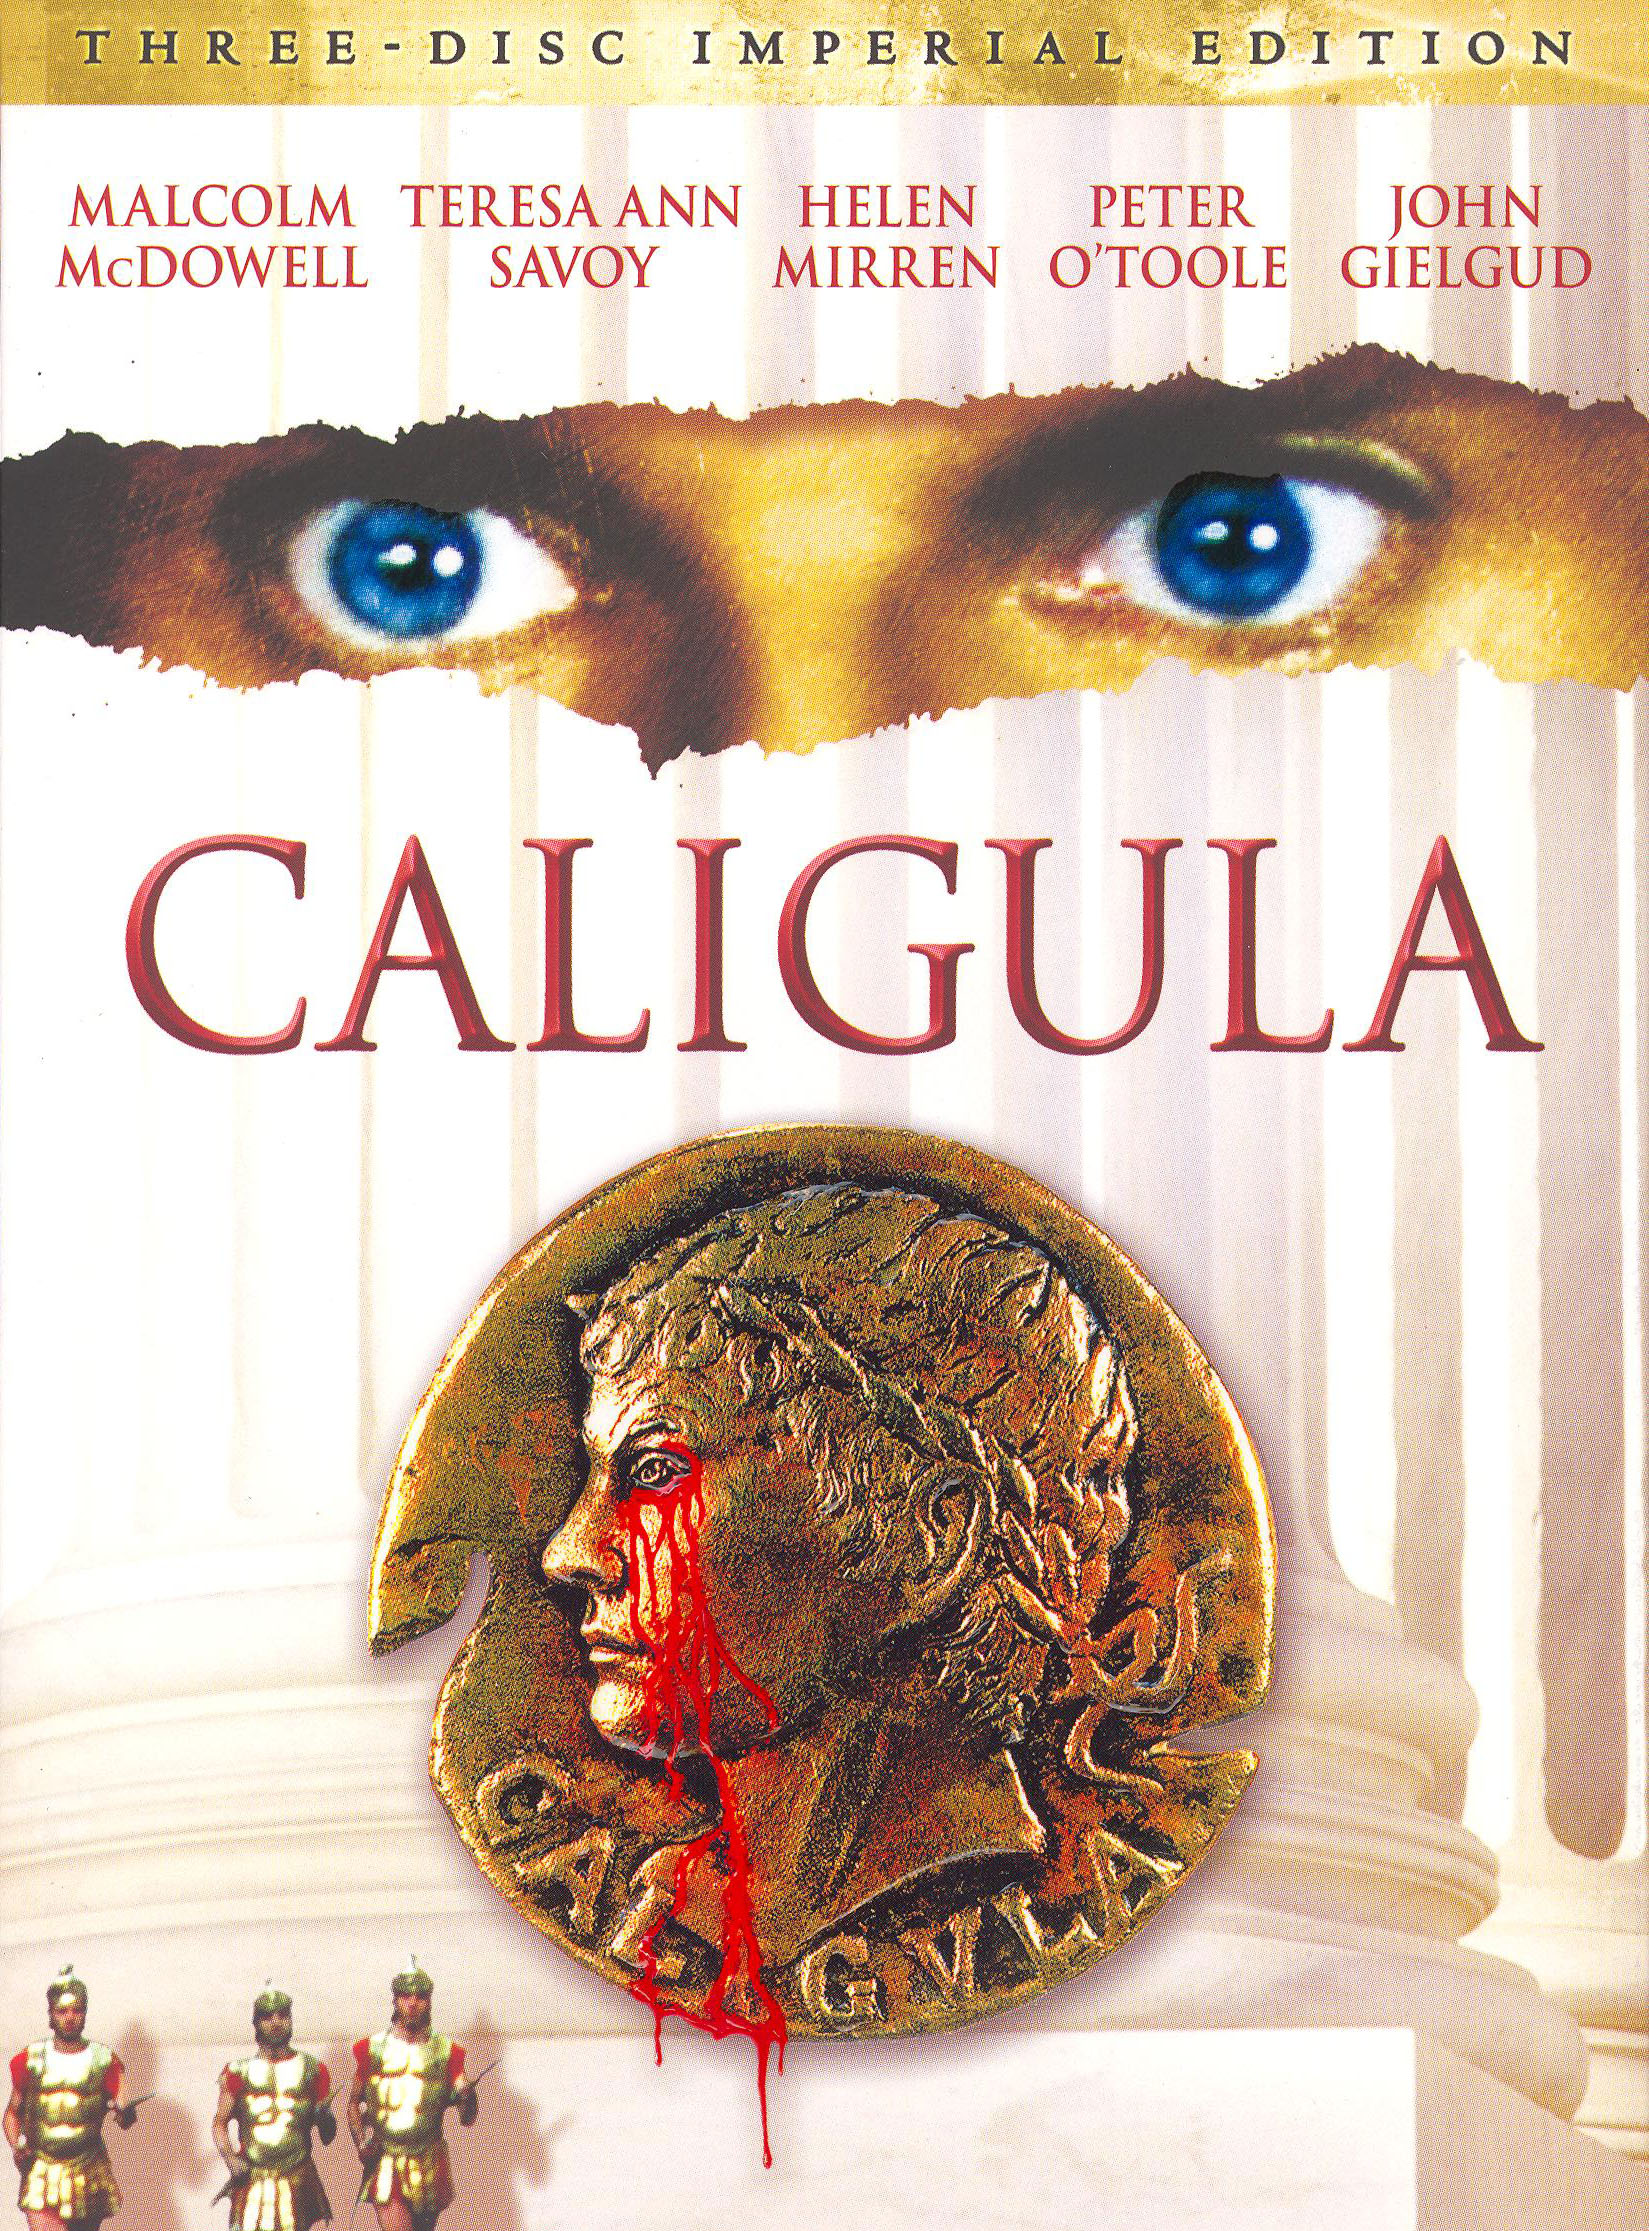 Viva caligula orgy room